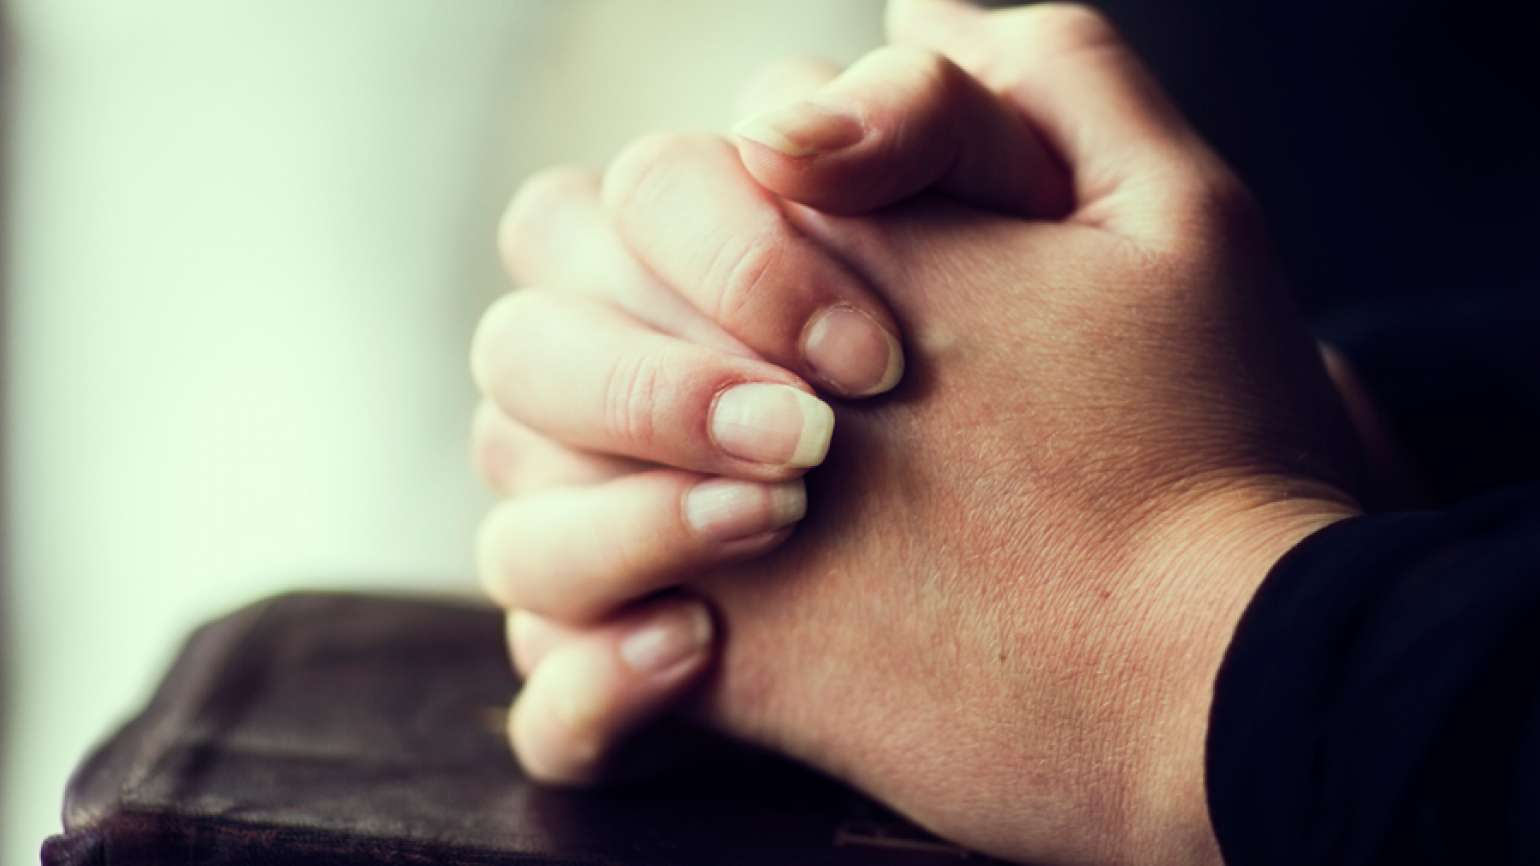 Guideposts: Hands clasped in prayer